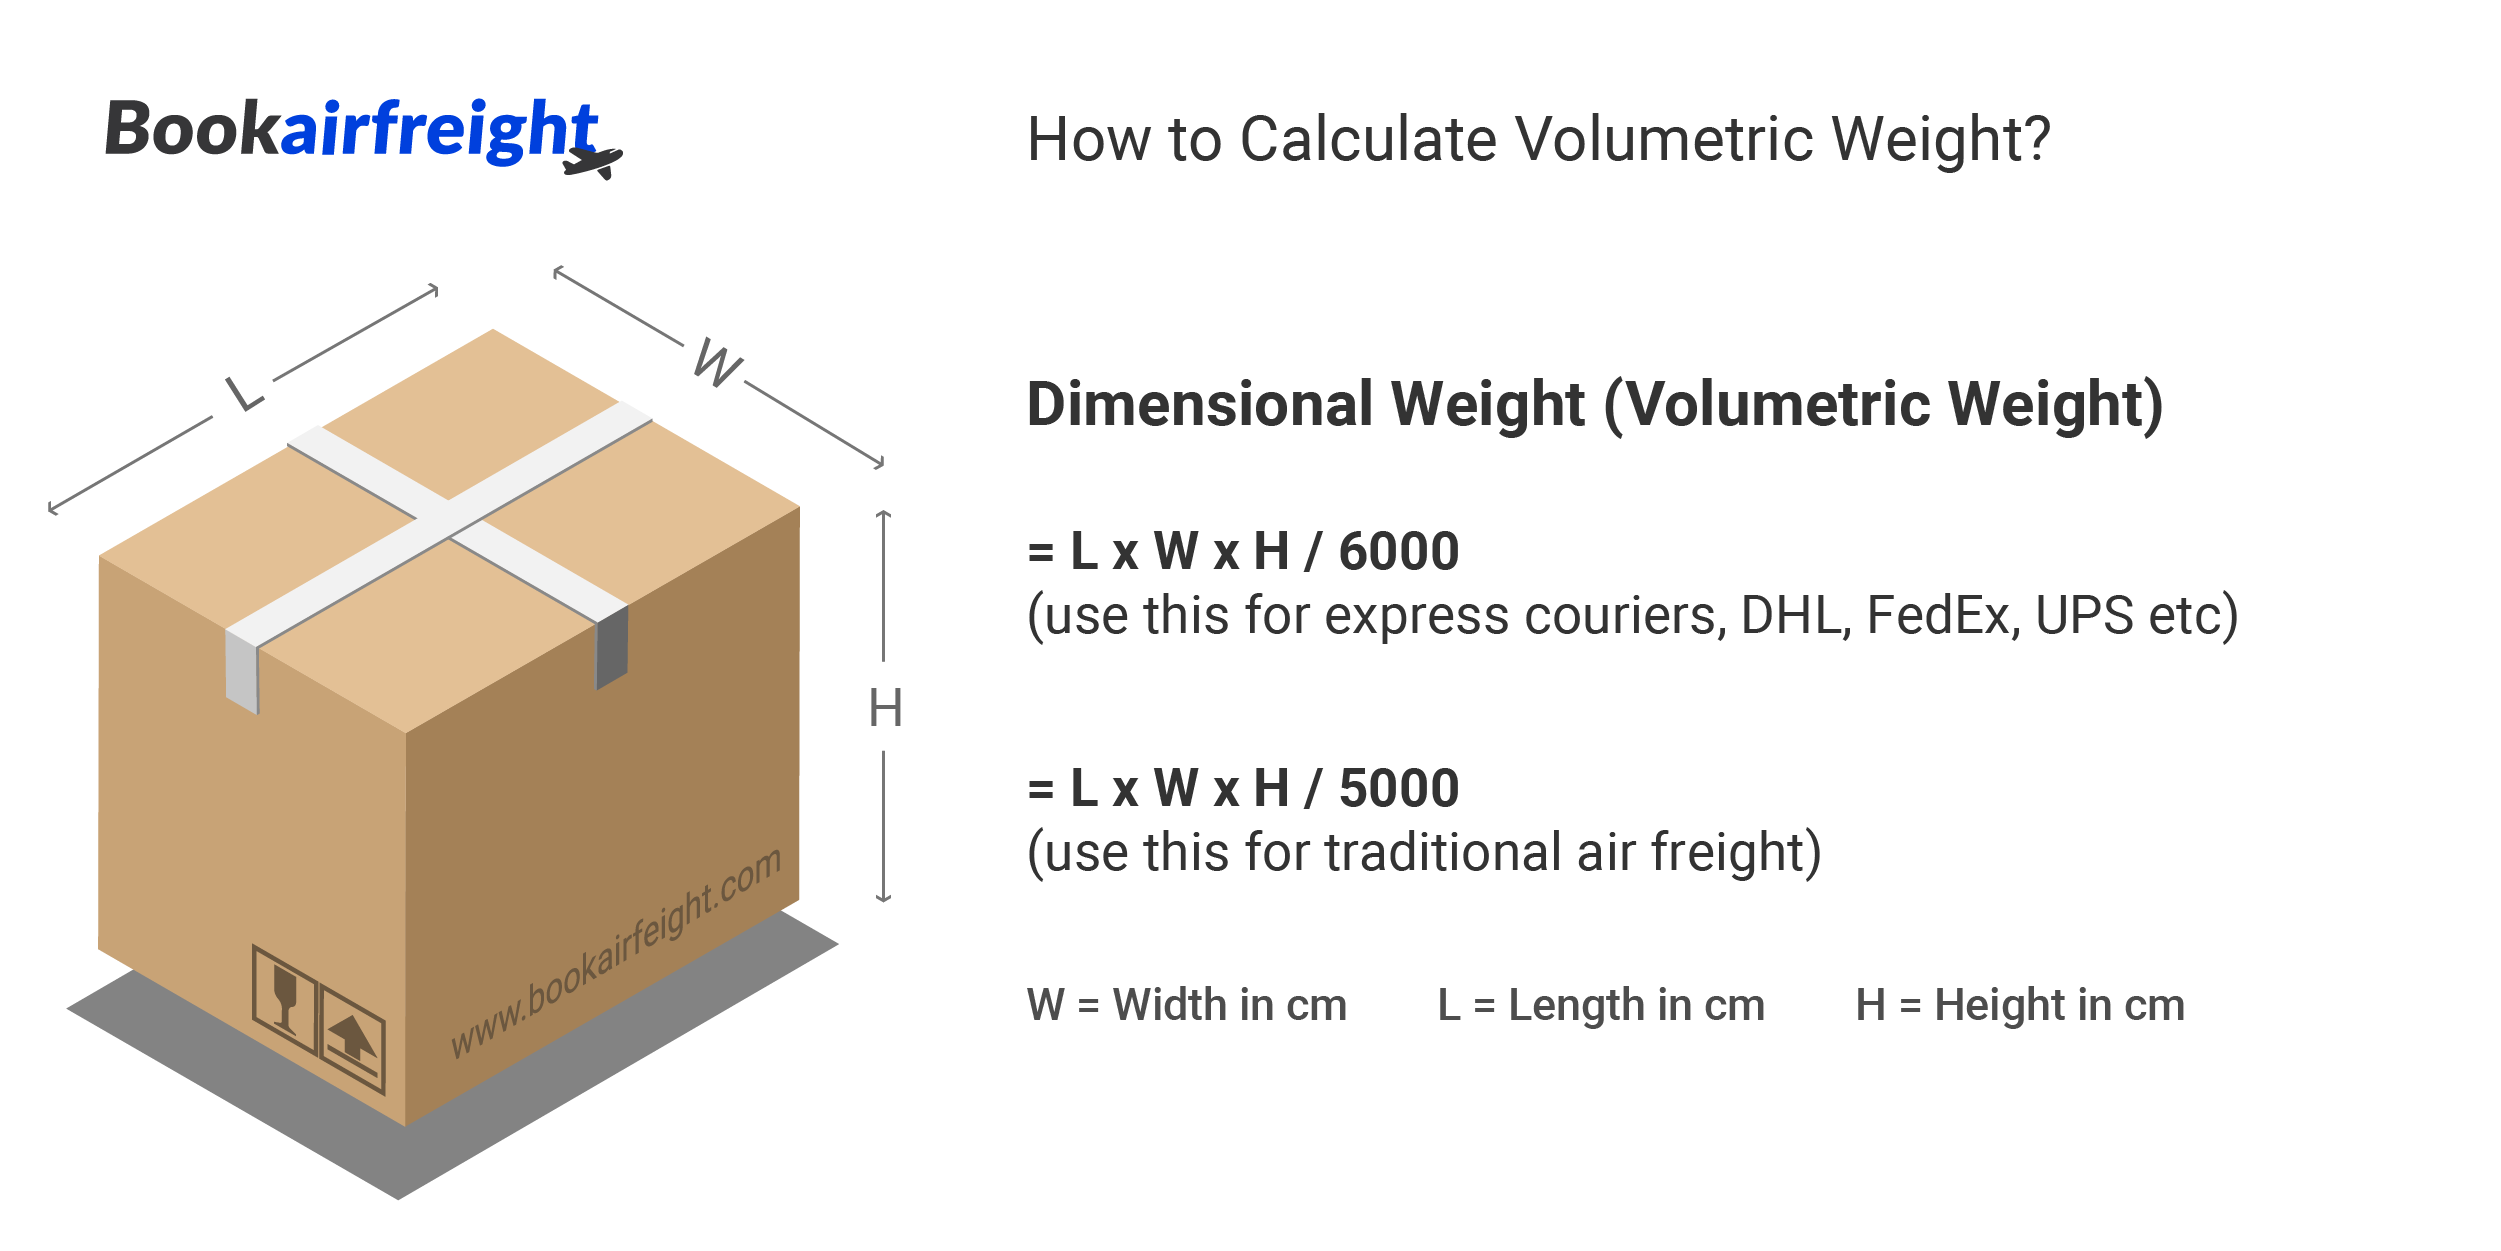 How to calculate Volumetric Weight?